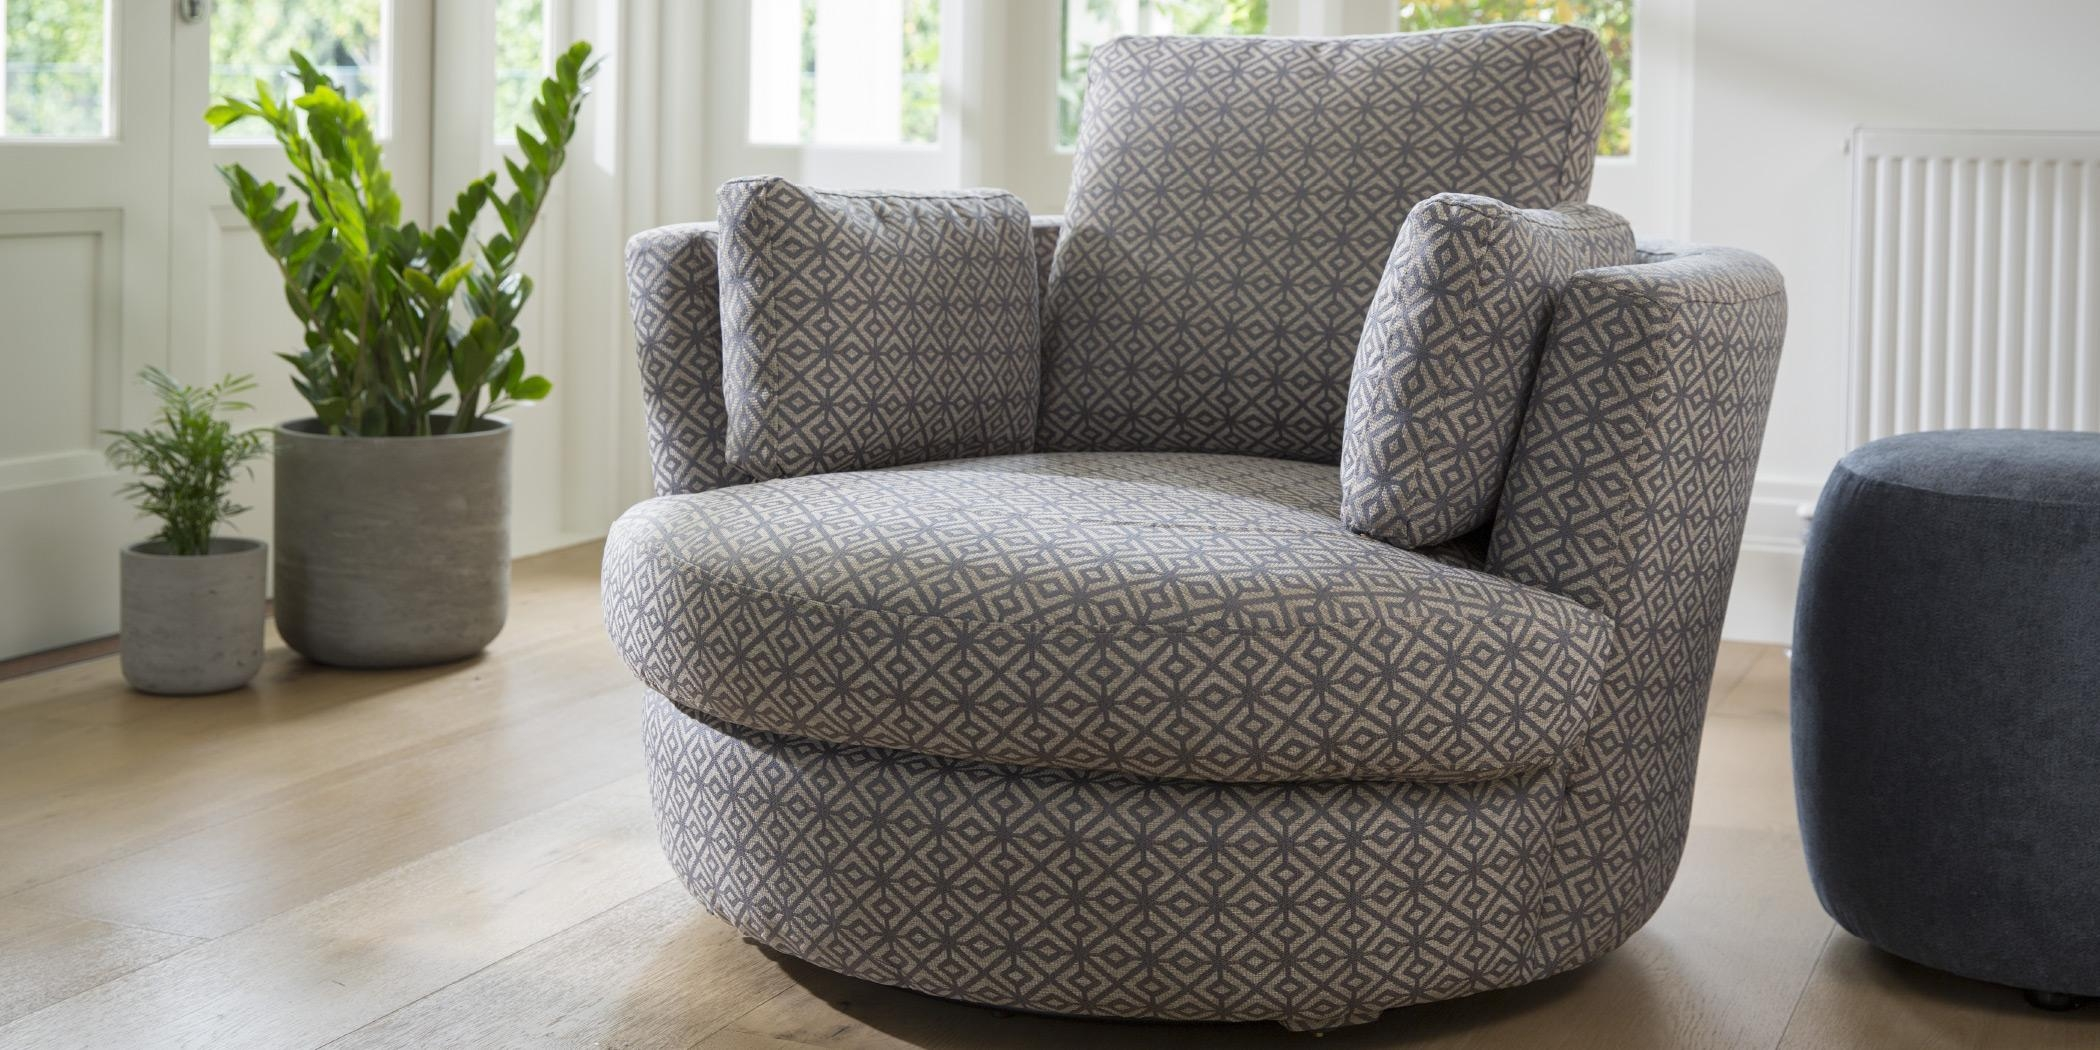 Snuggle Petite Chair | Leather, Fabric, Occasional Chairs | Plush In Snuggle Sofas (Image 15 of 20)